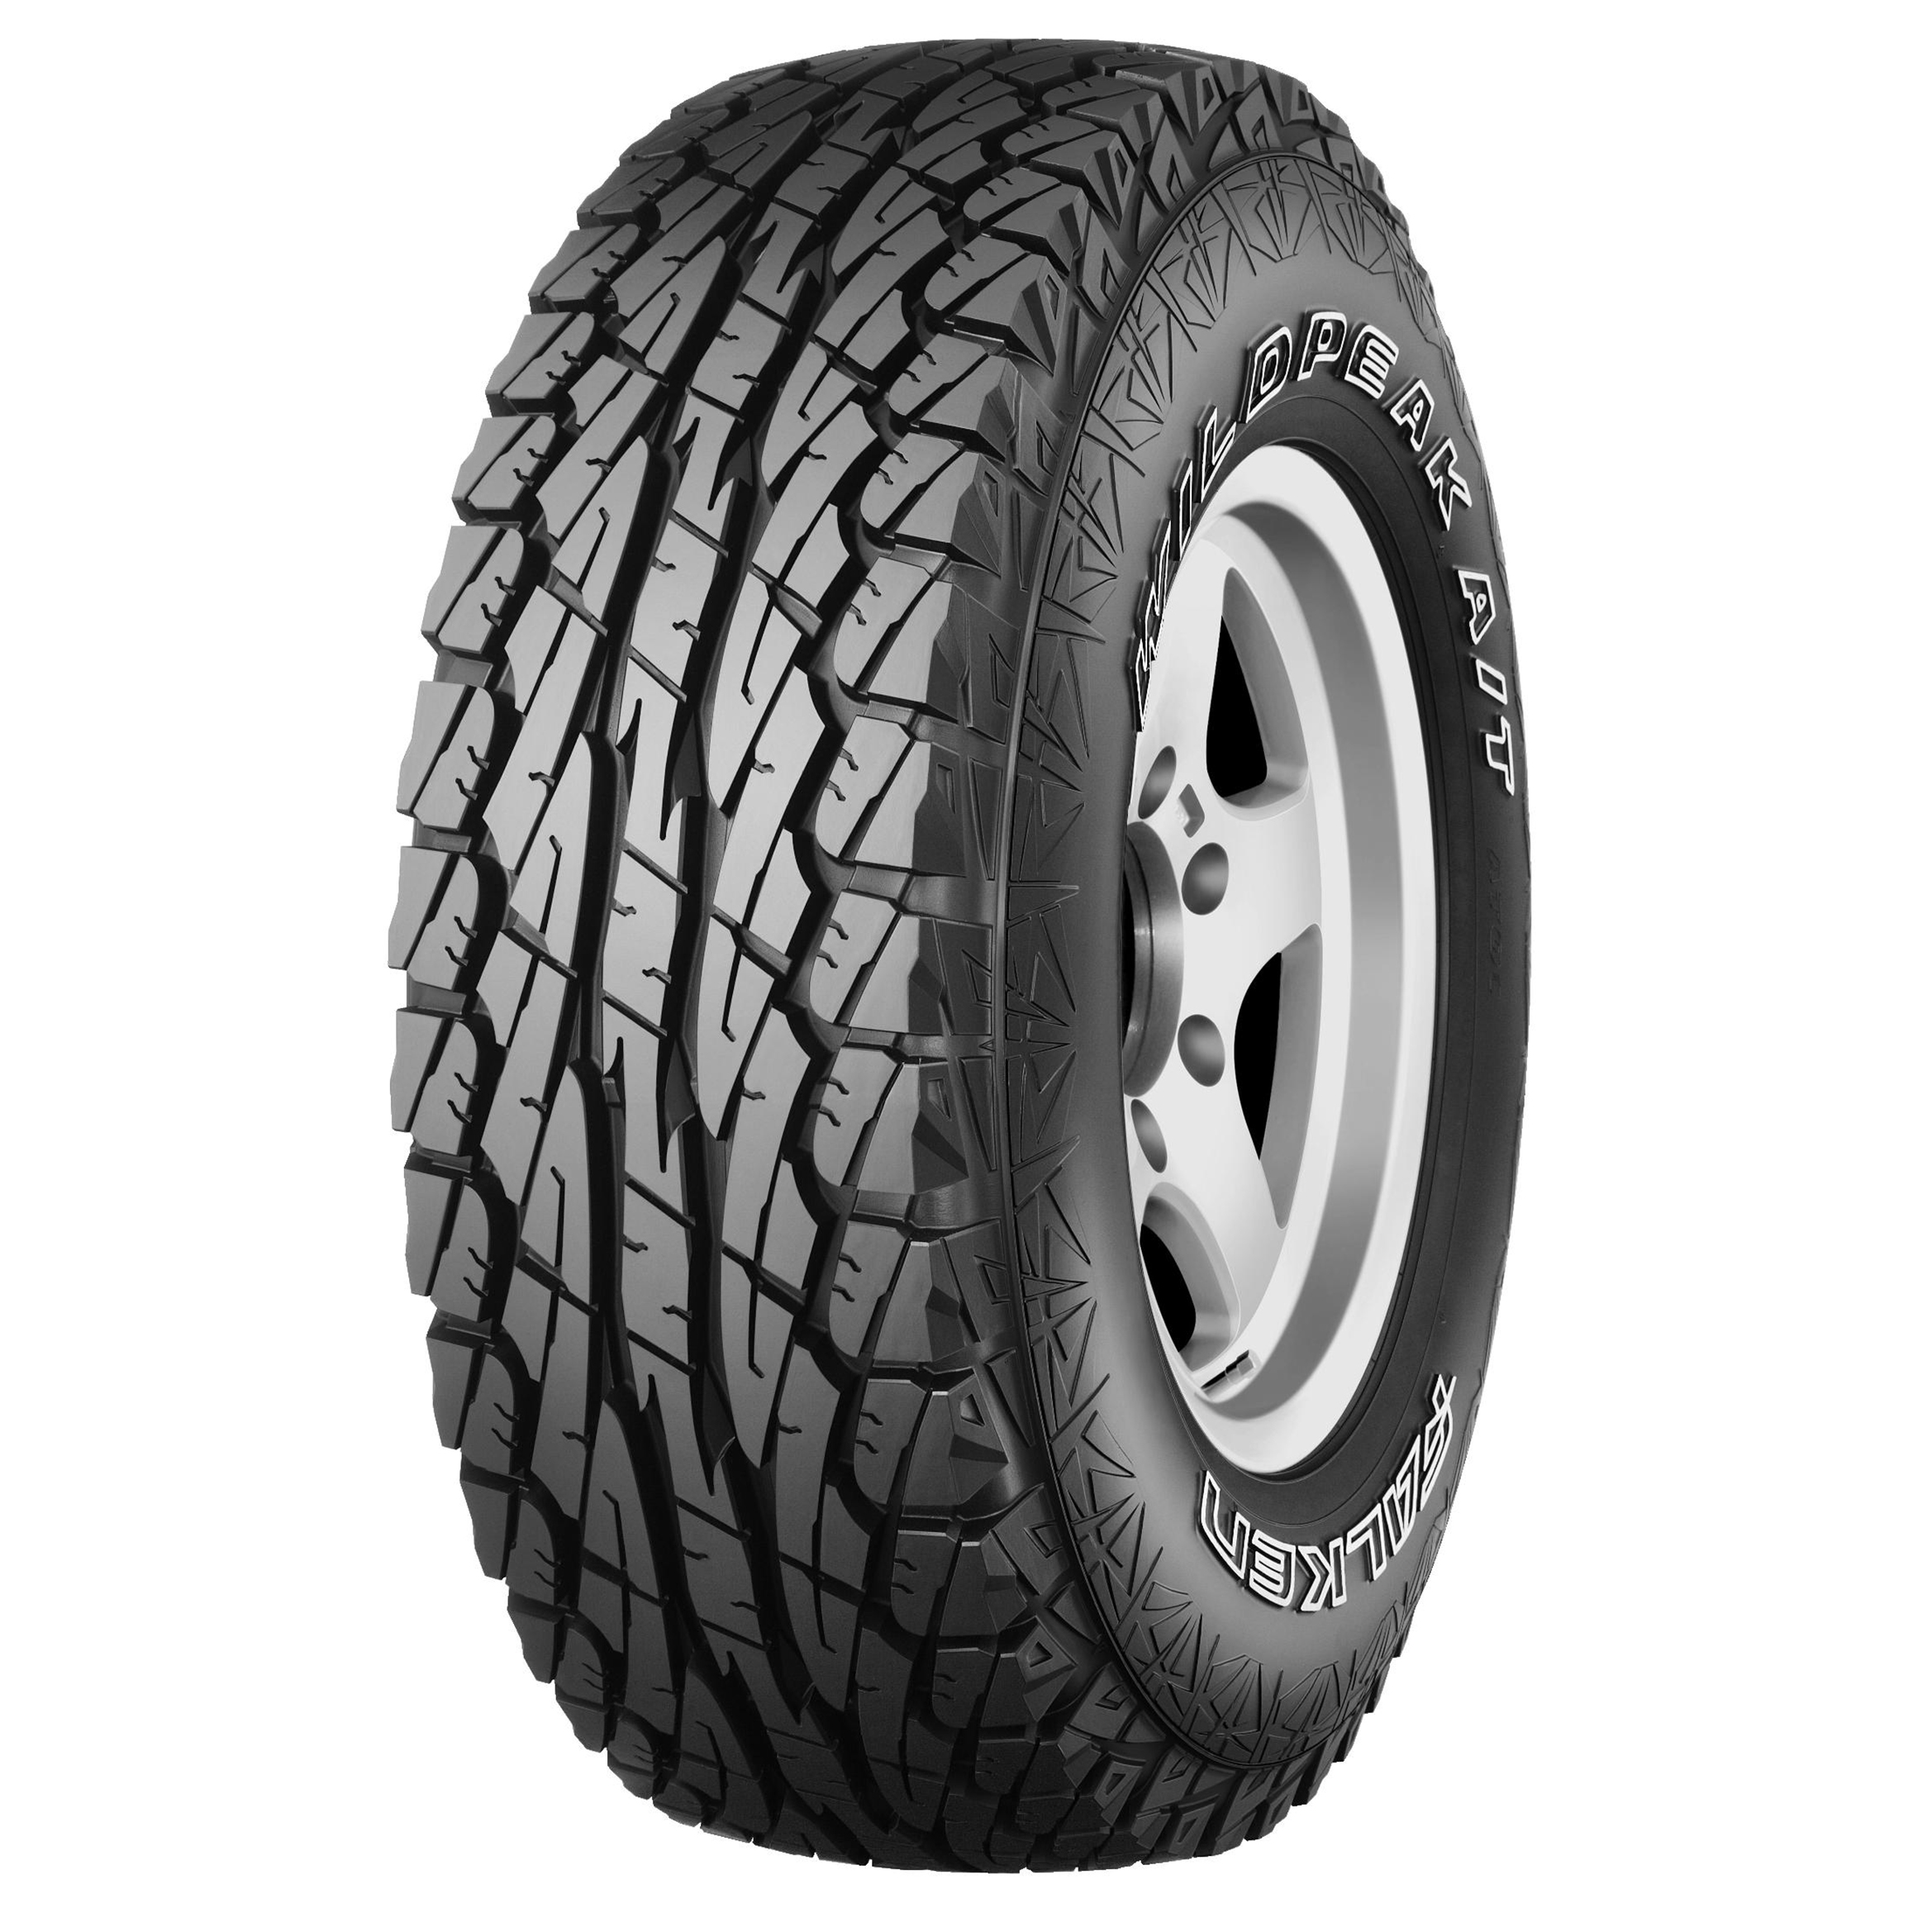 Falken Wildpeak AT 01 235/65 R 17 Tubeless 104 T Car Tyre